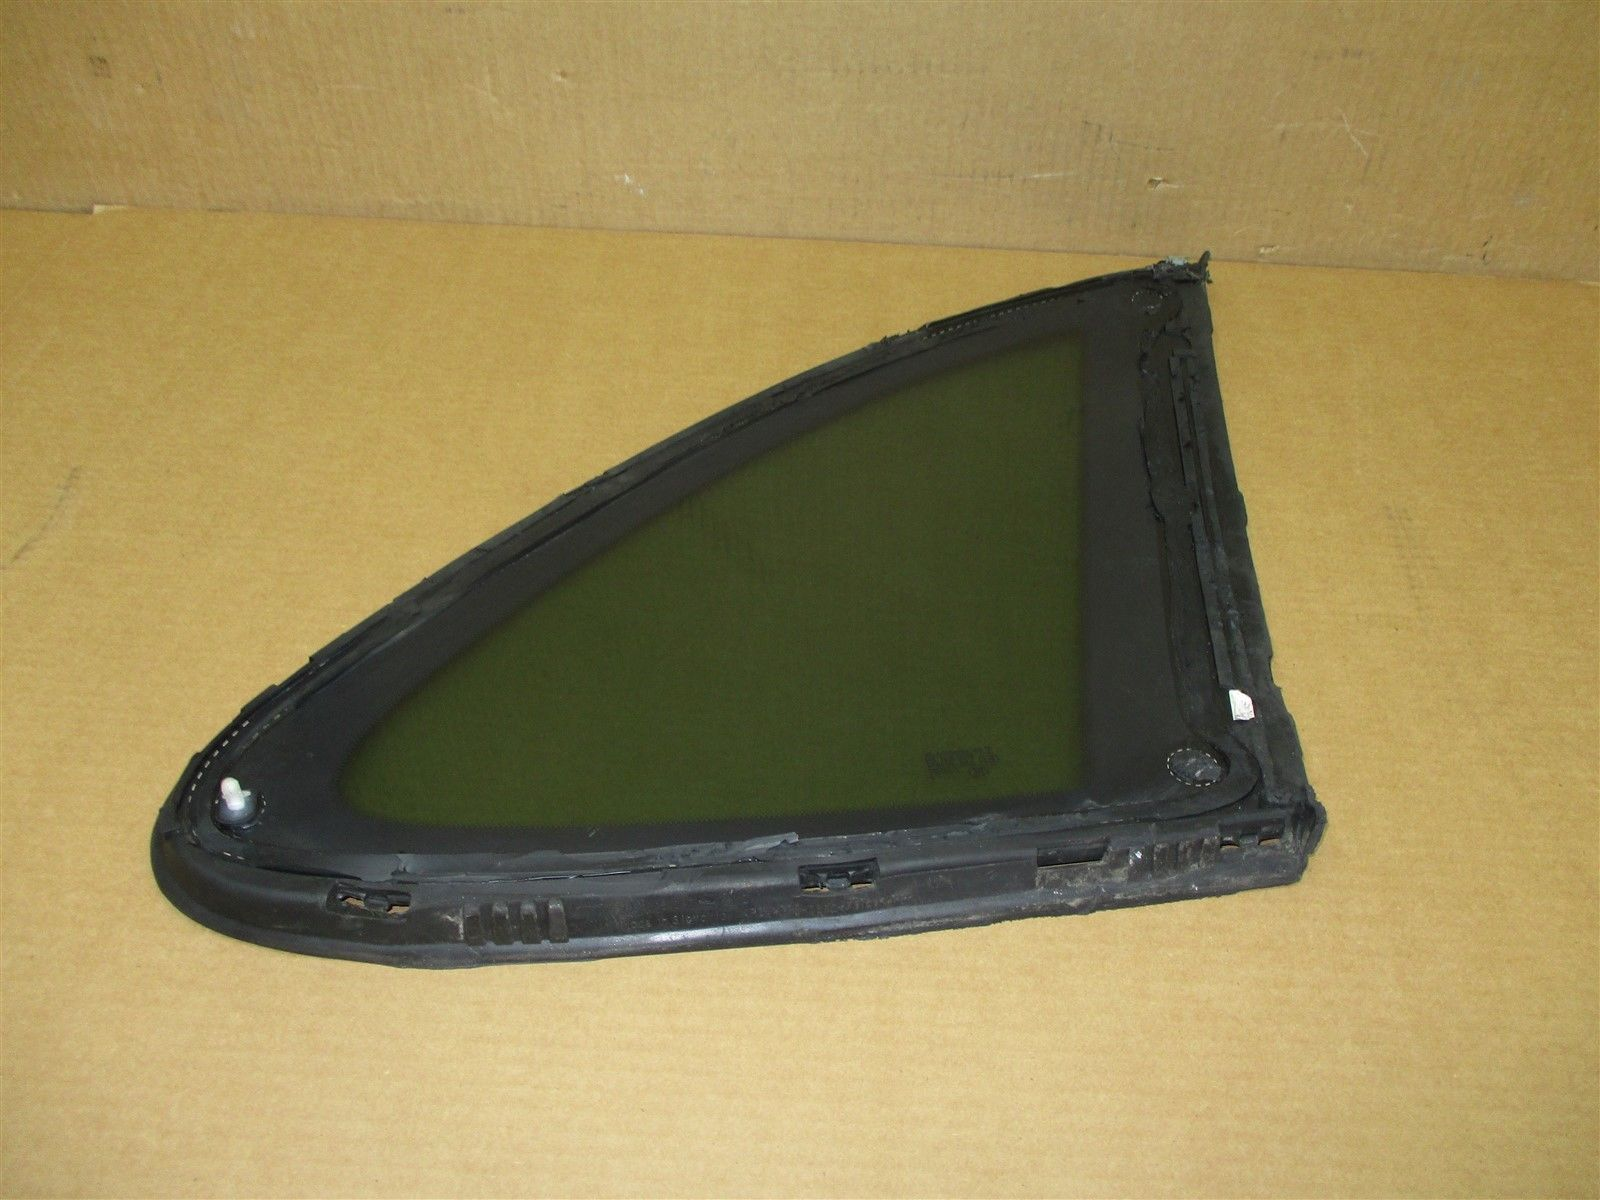 17 Cayenne Turbo AWD Porsche 958 L REAR DOOR WINDOW 43R-002092 DRIVER 9,356